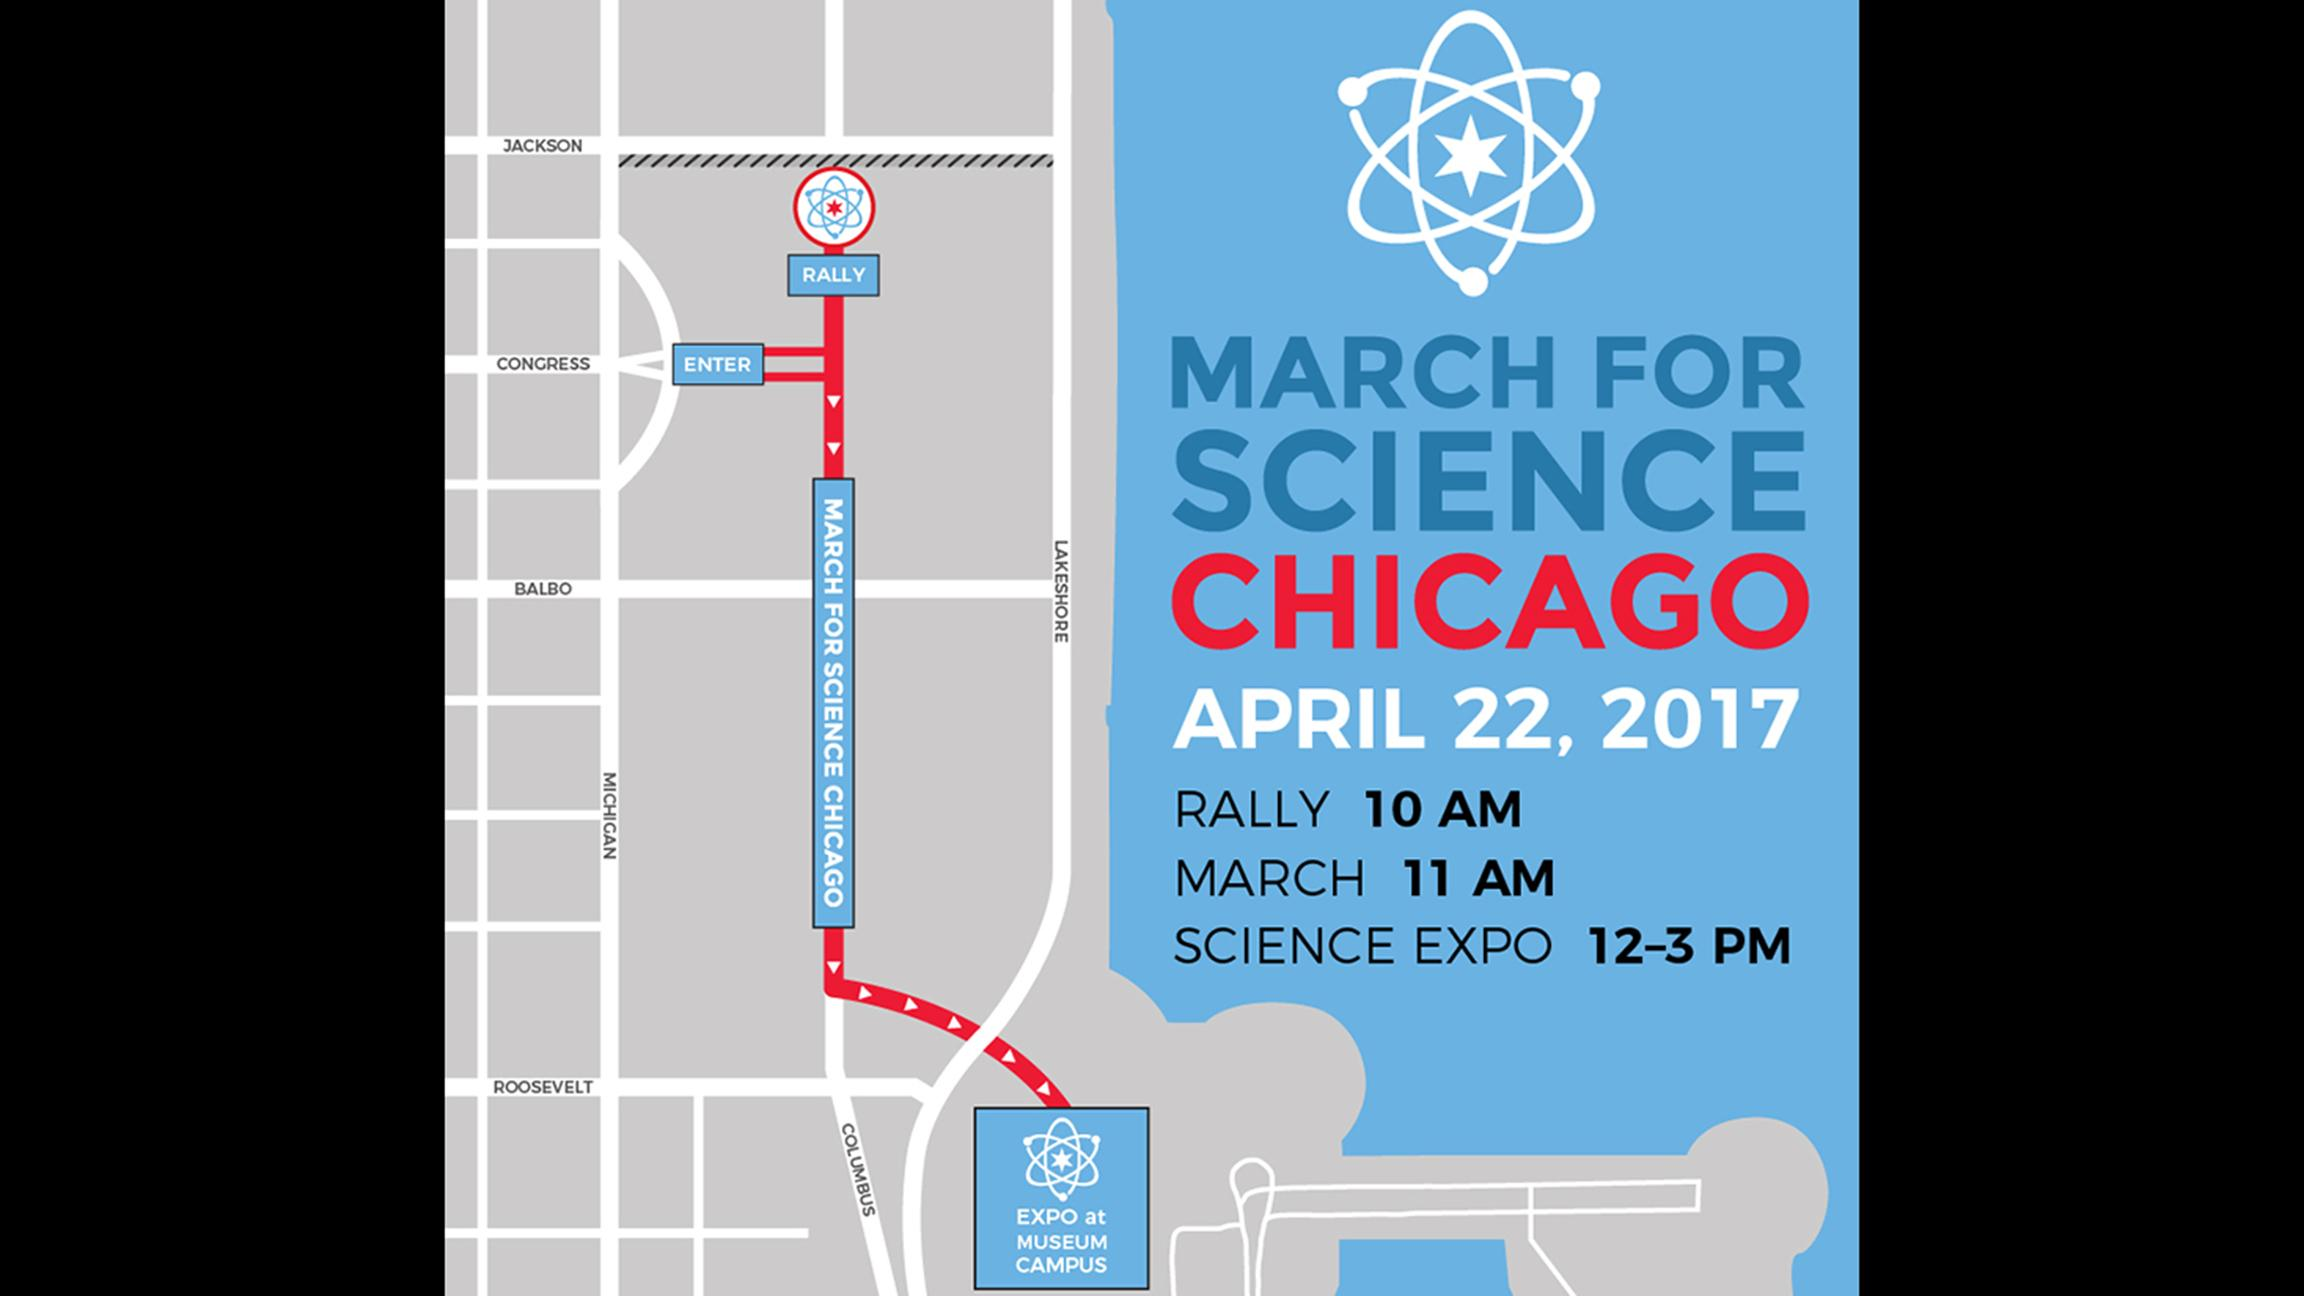 (March for Science Chicago)